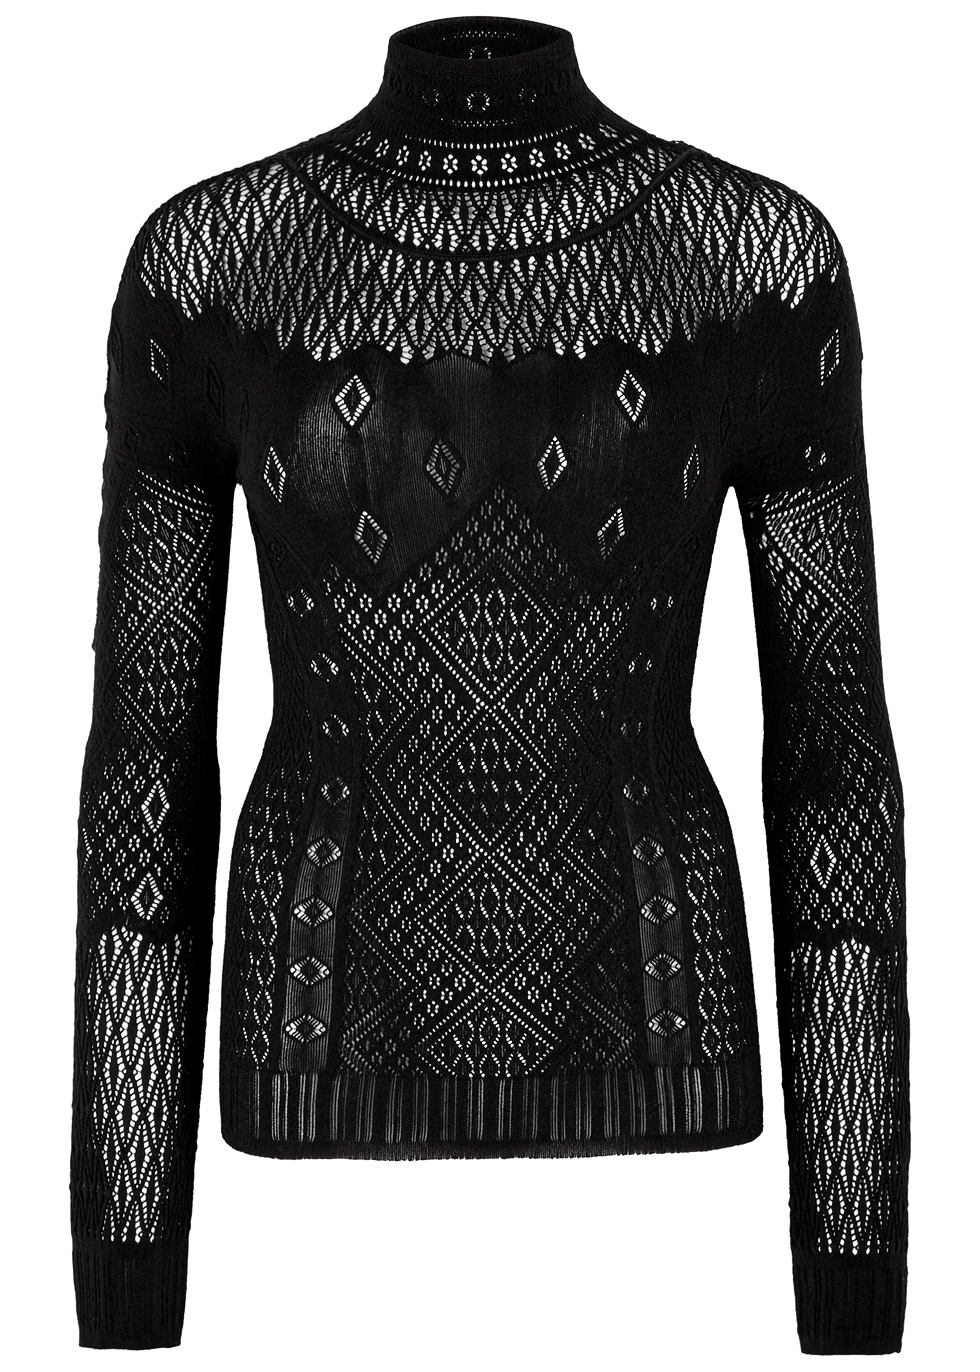 HIGH APPLAUSE BLACK POINTELLE-KNIT TOP